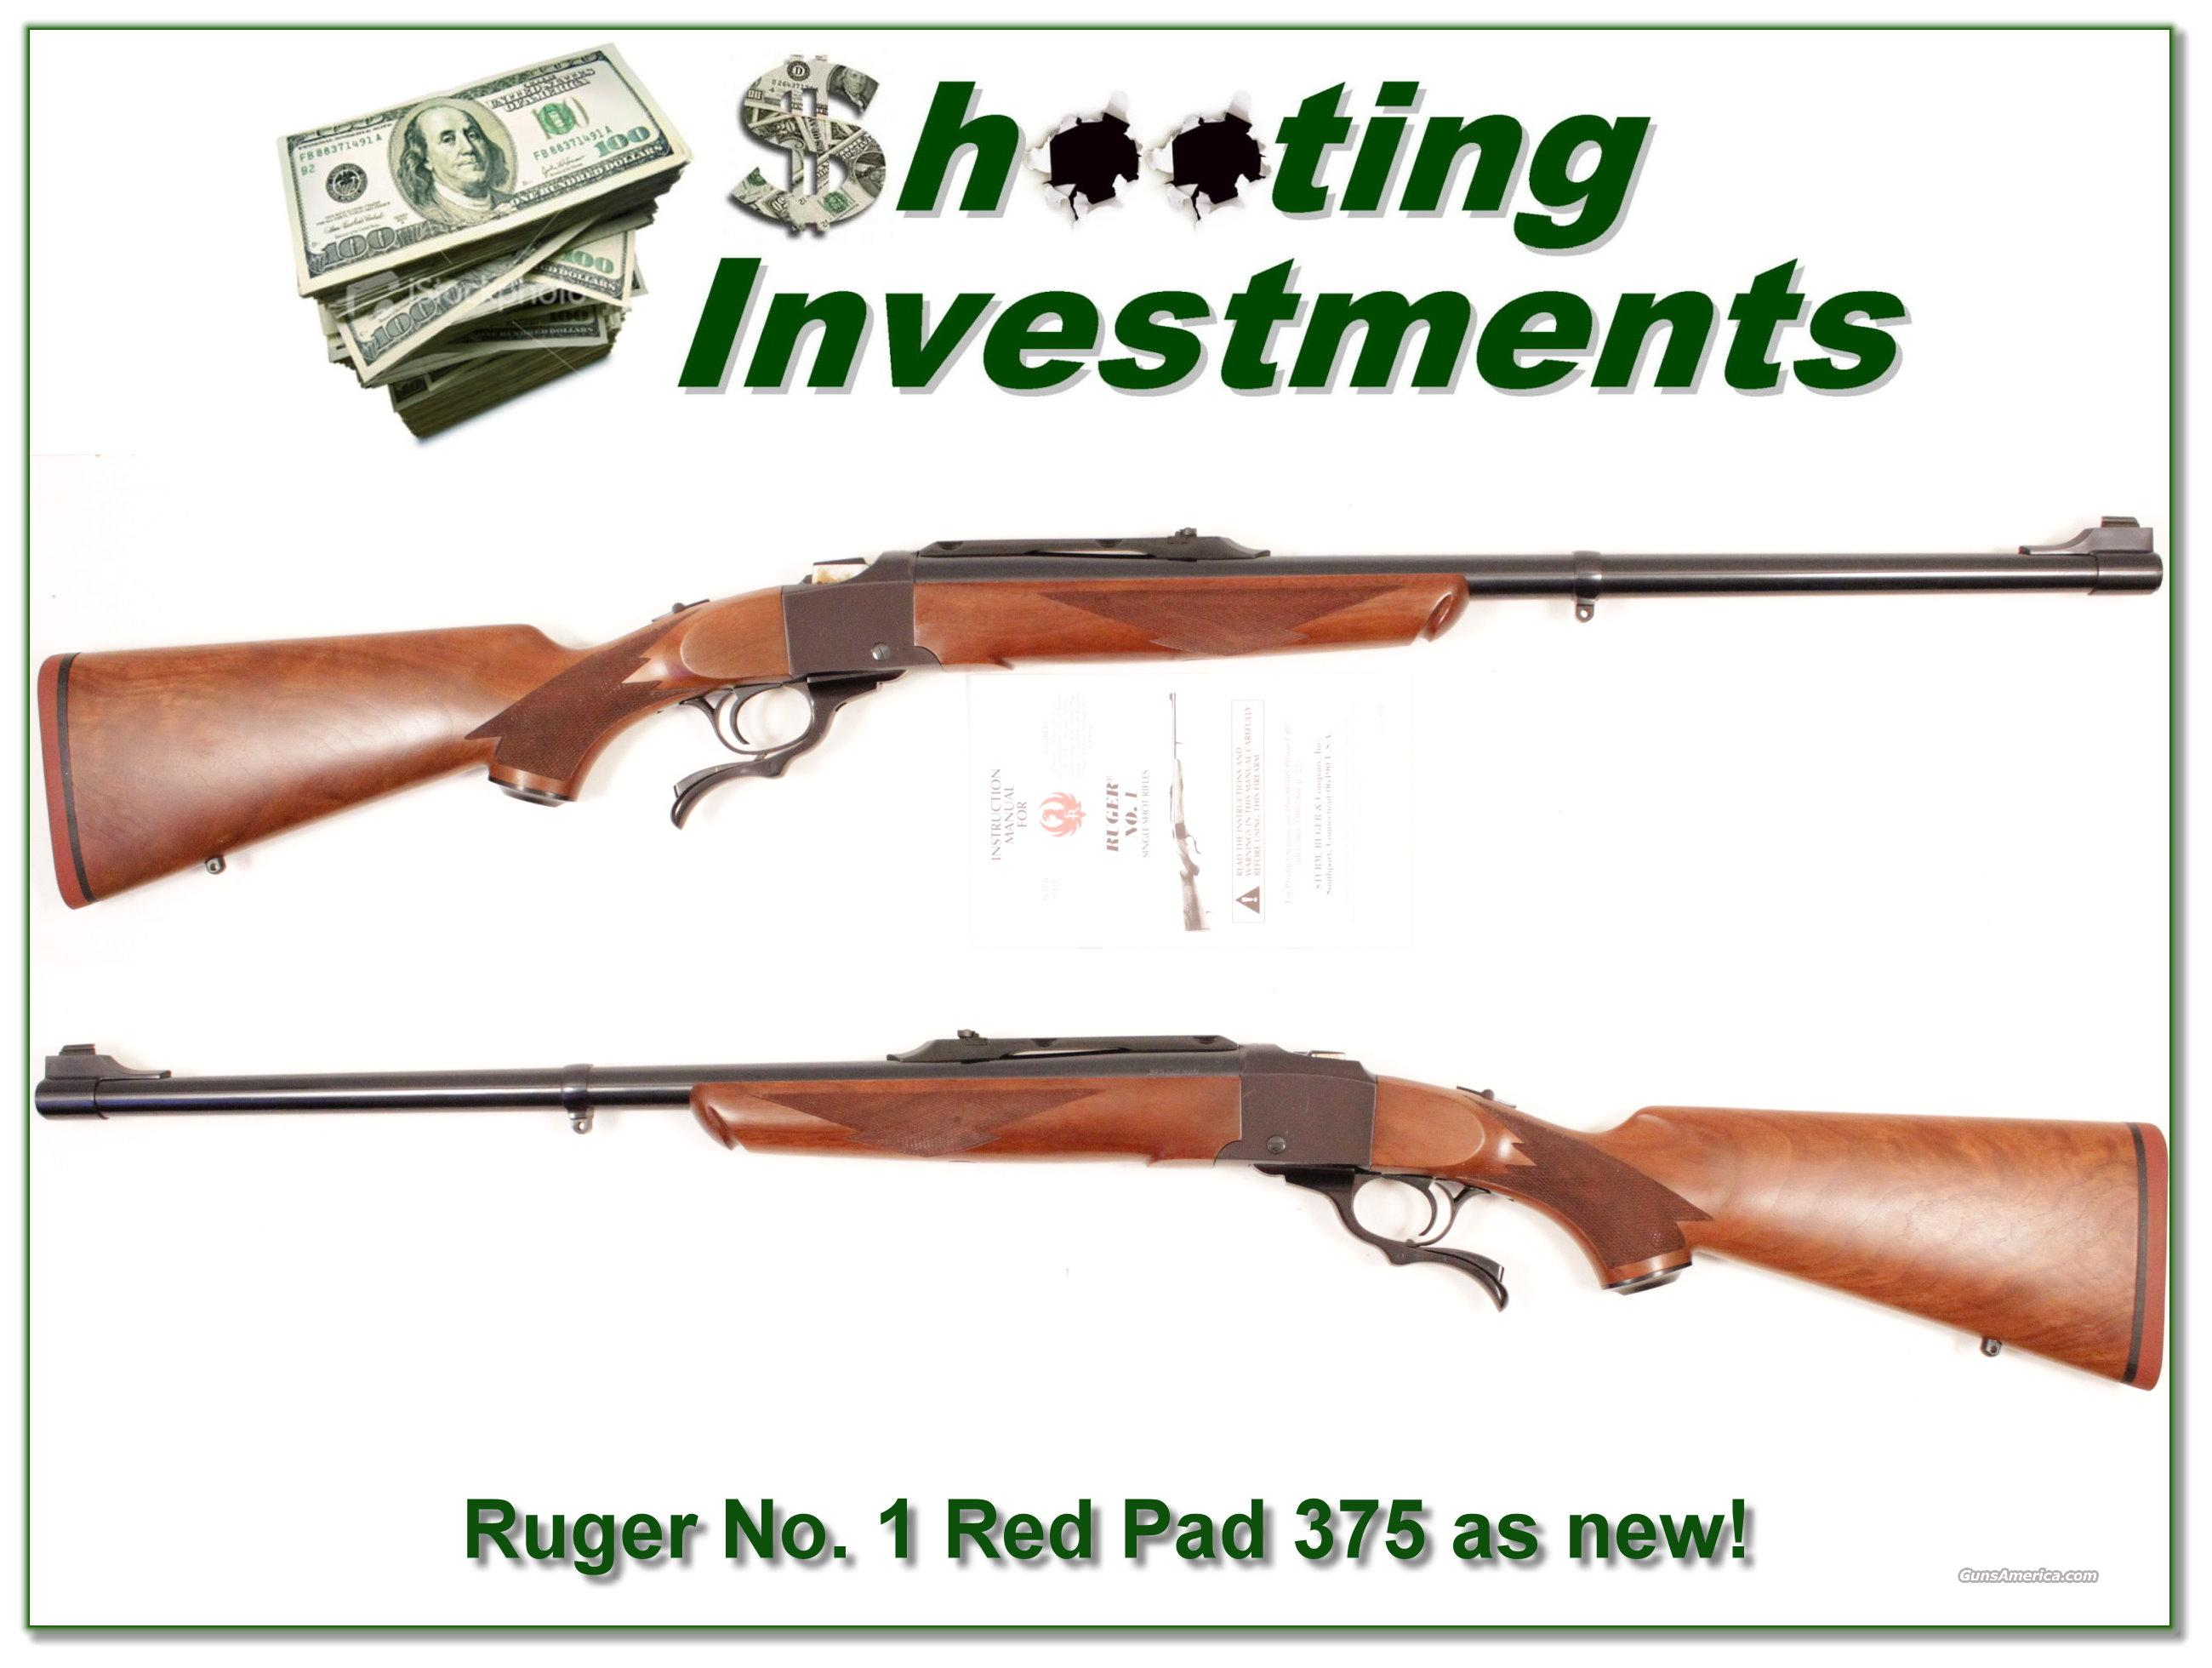 Ruger No. 1 #1 Tropical Red Pad 375 H&H as new  Guns > Rifles > Ruger Rifles > #1 Type